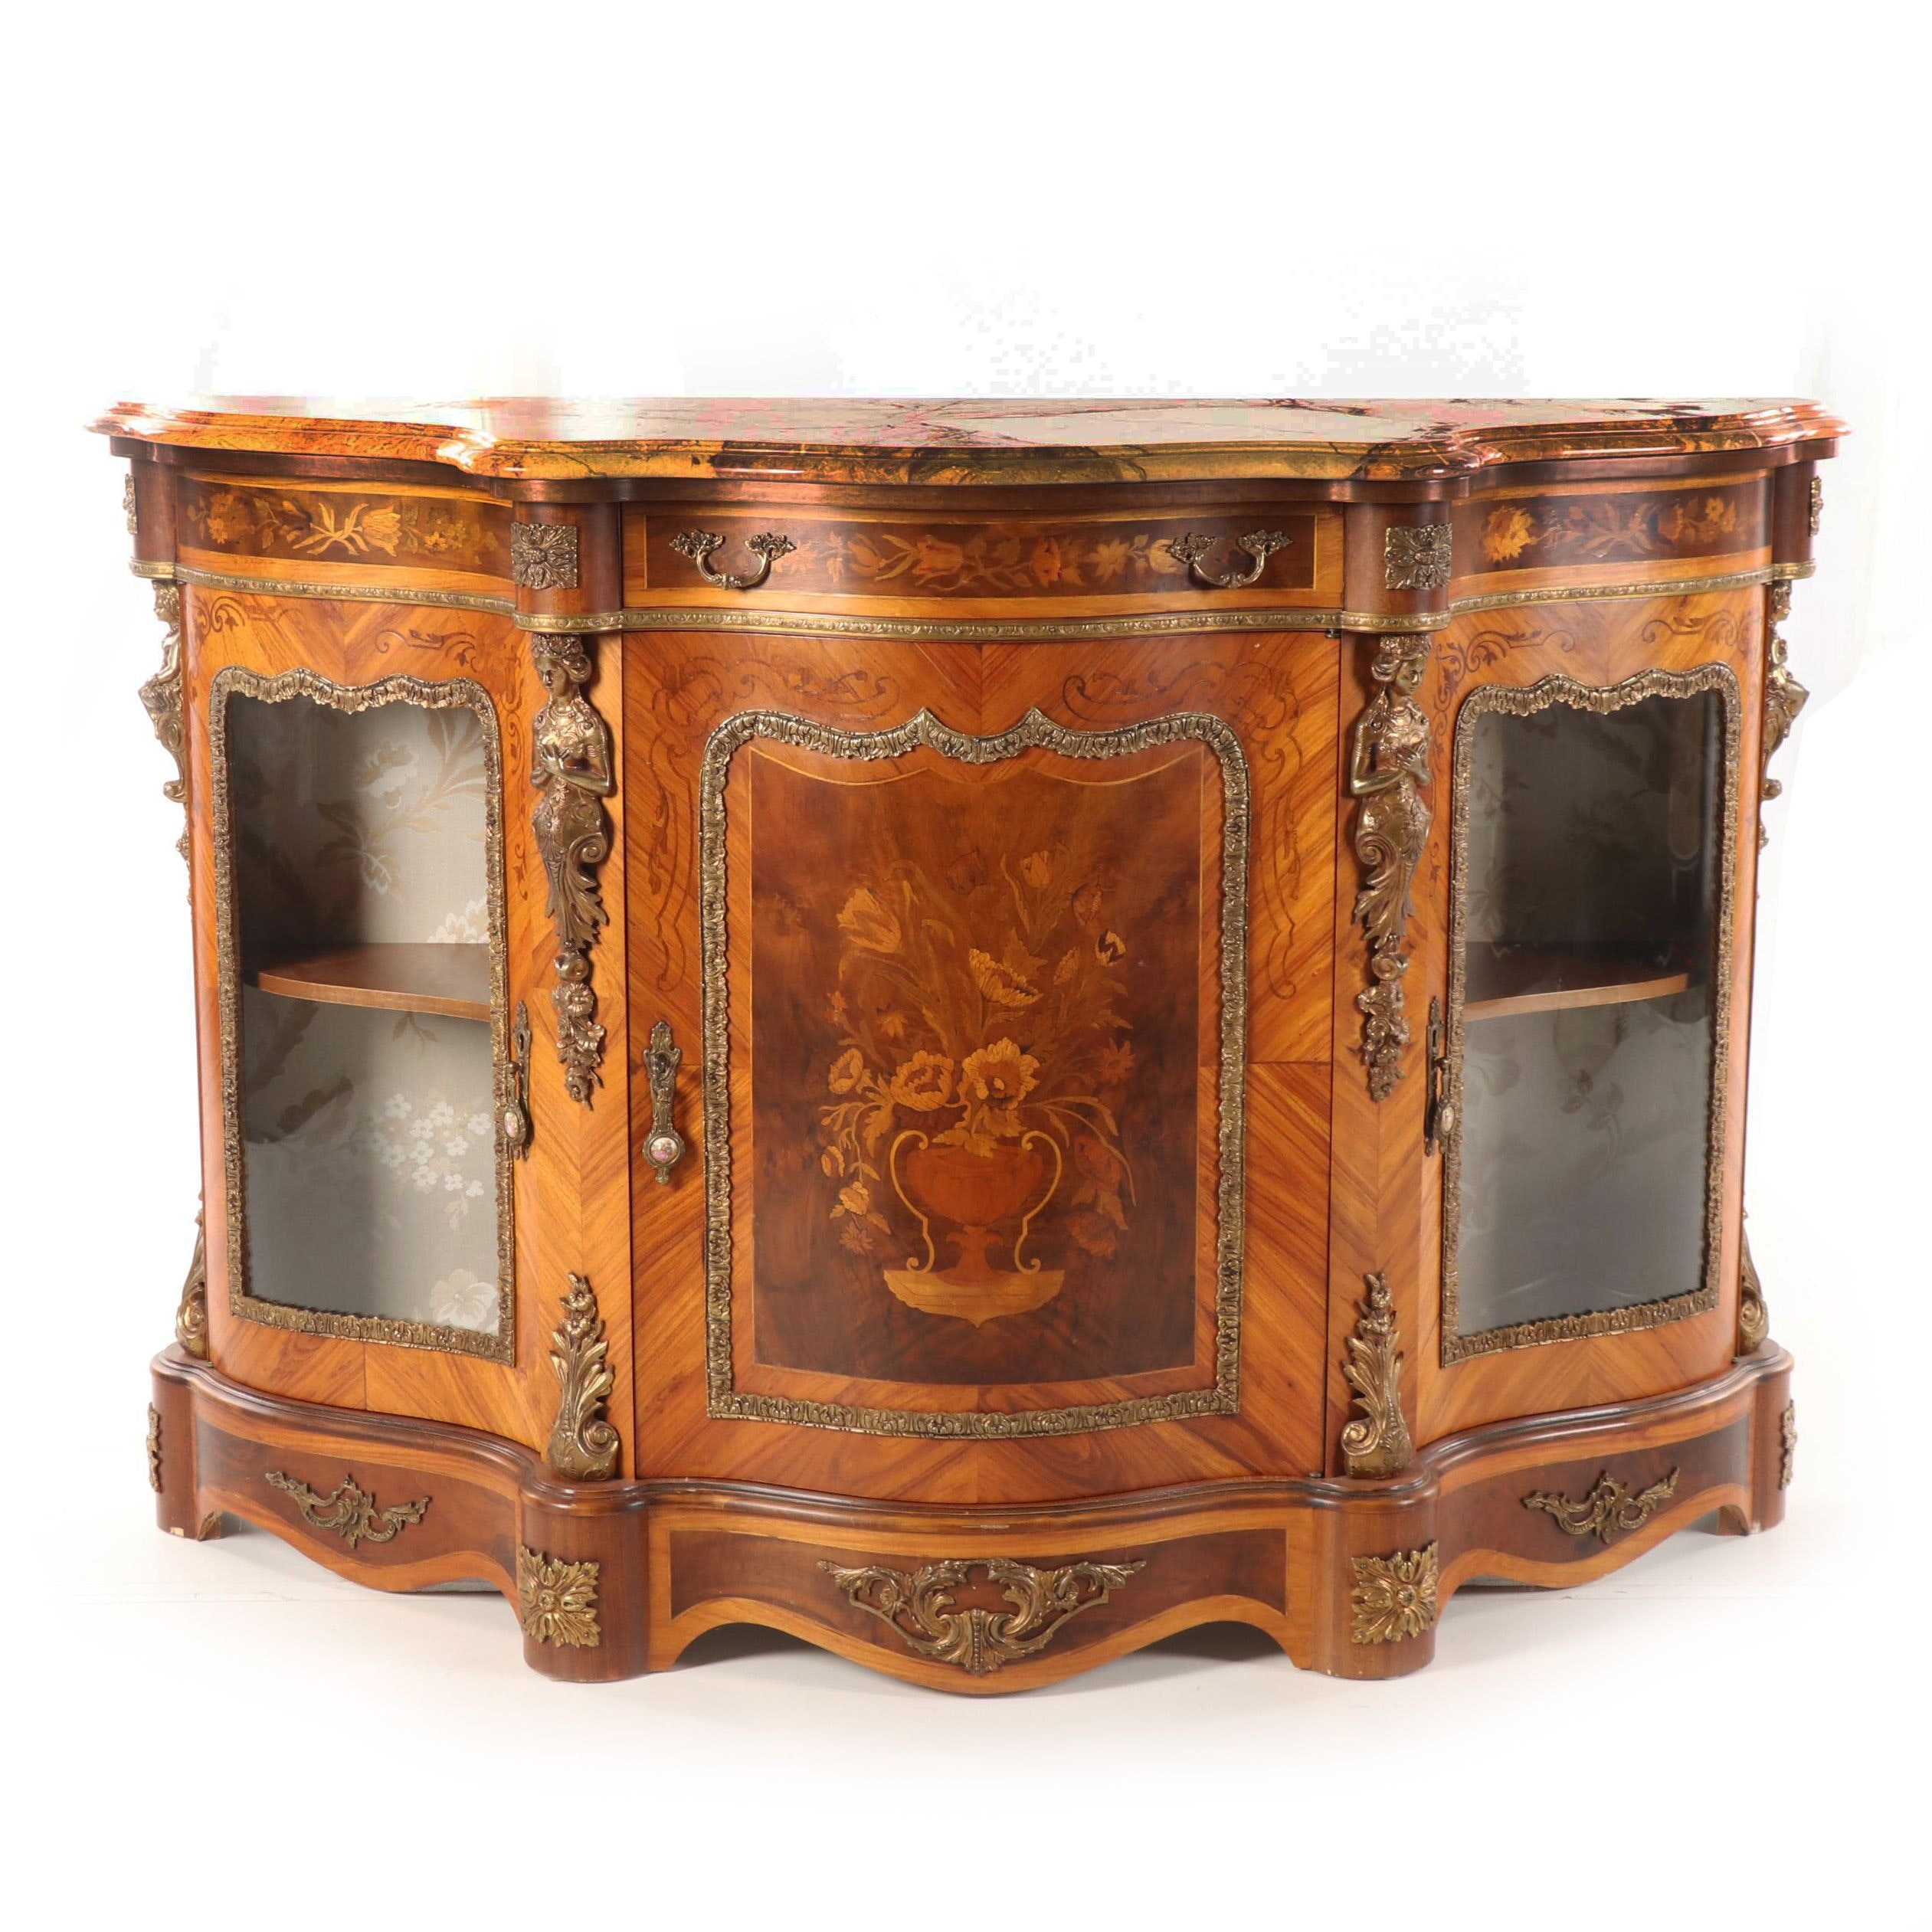 Italian Renaissance Style Walnut and Stone Commode with Marquetry Inlay, 20th C.